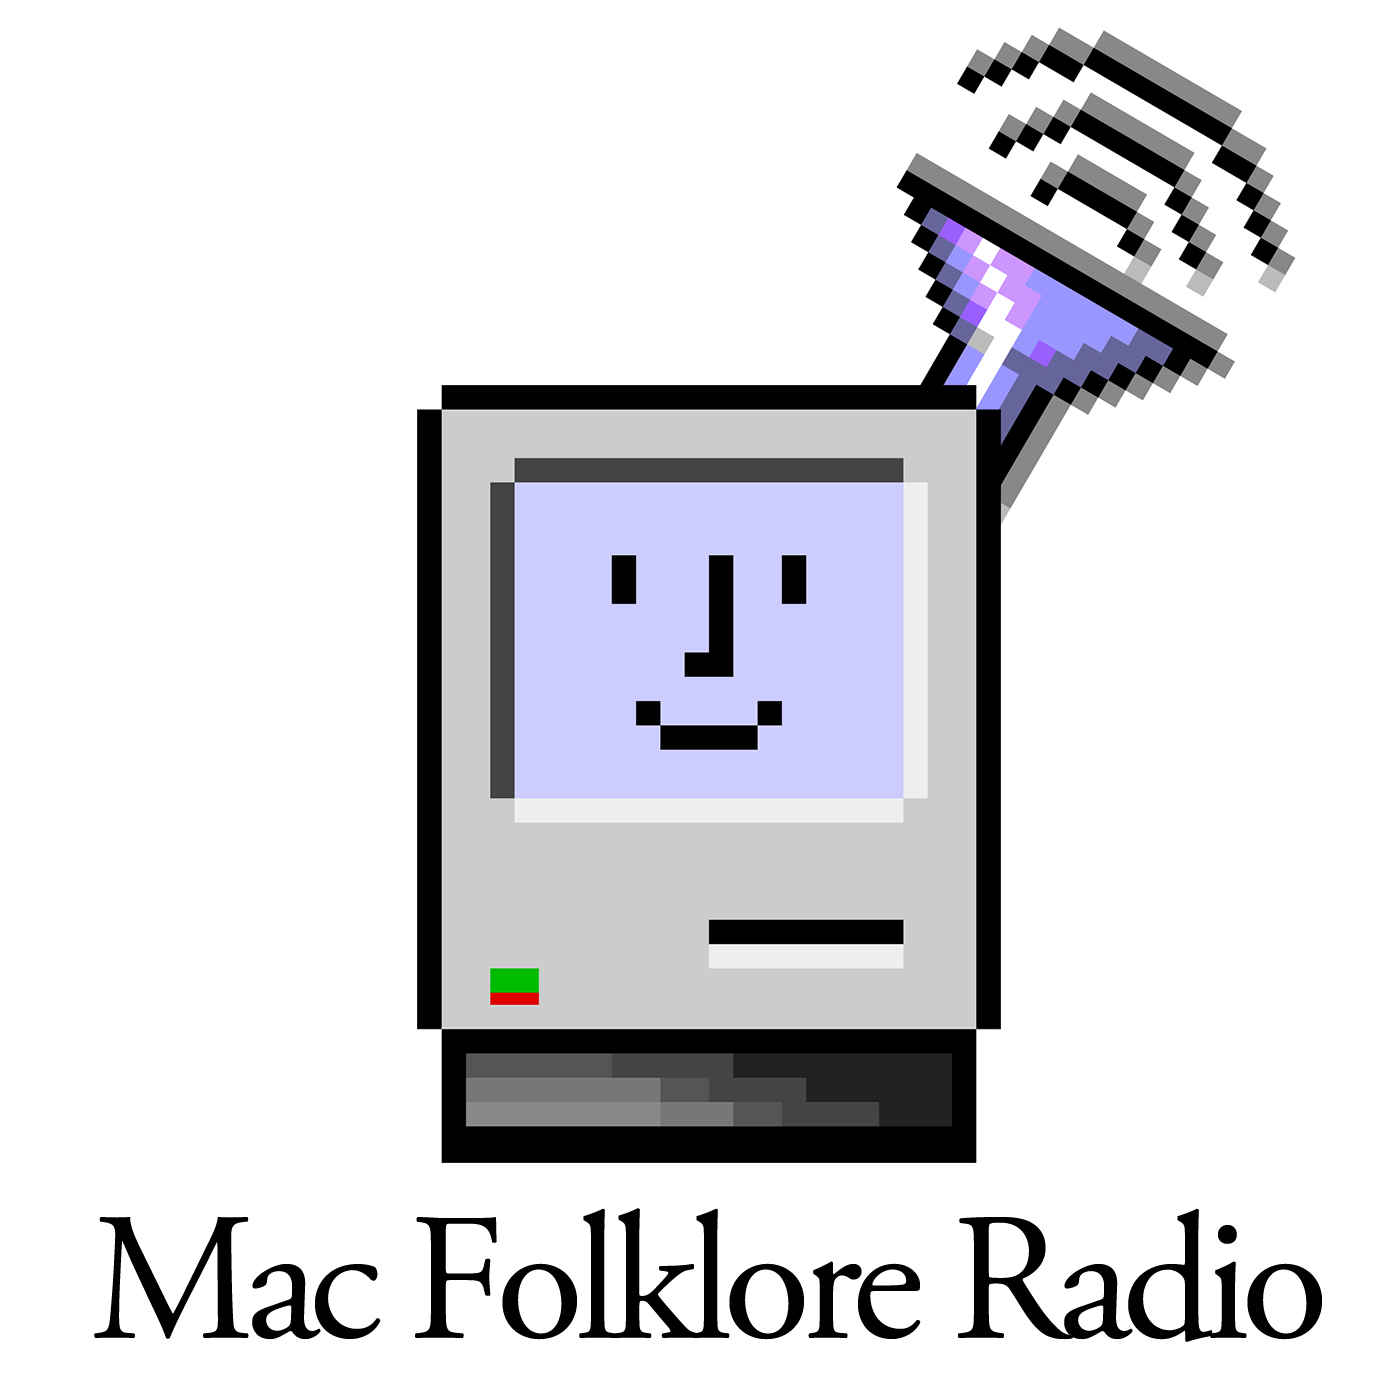 Mac Folklore Radio